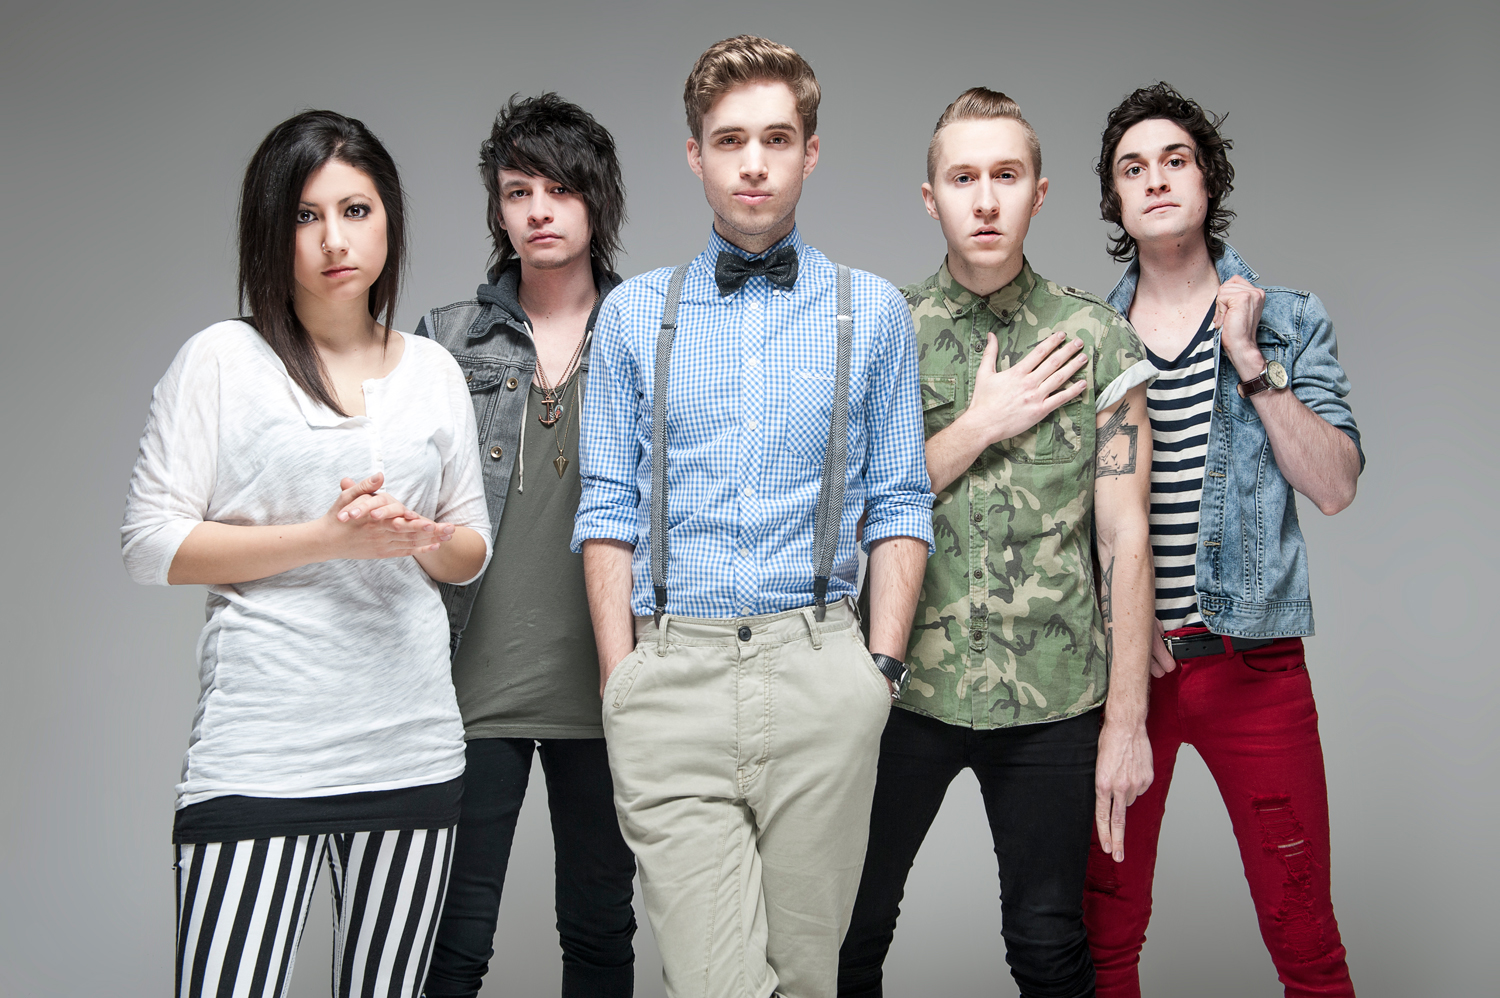 The Summer Set (Courtsey Fearless Records)